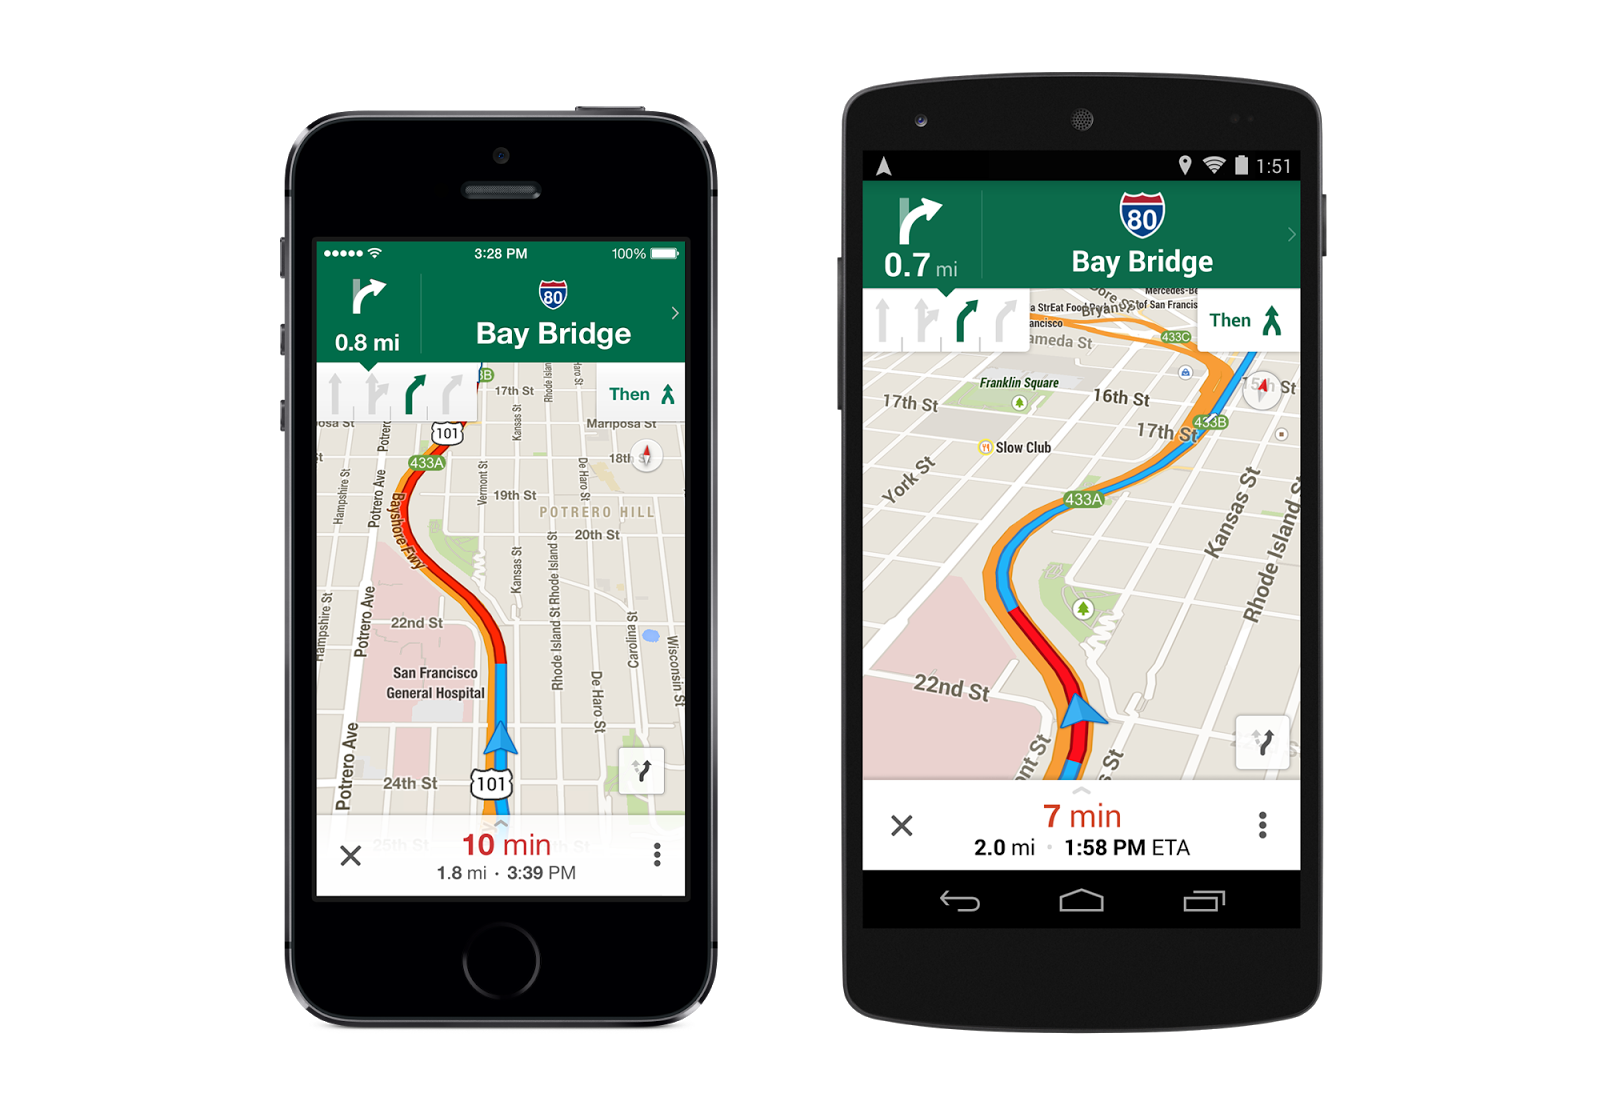 Google's Maps app features GPS lane guidance